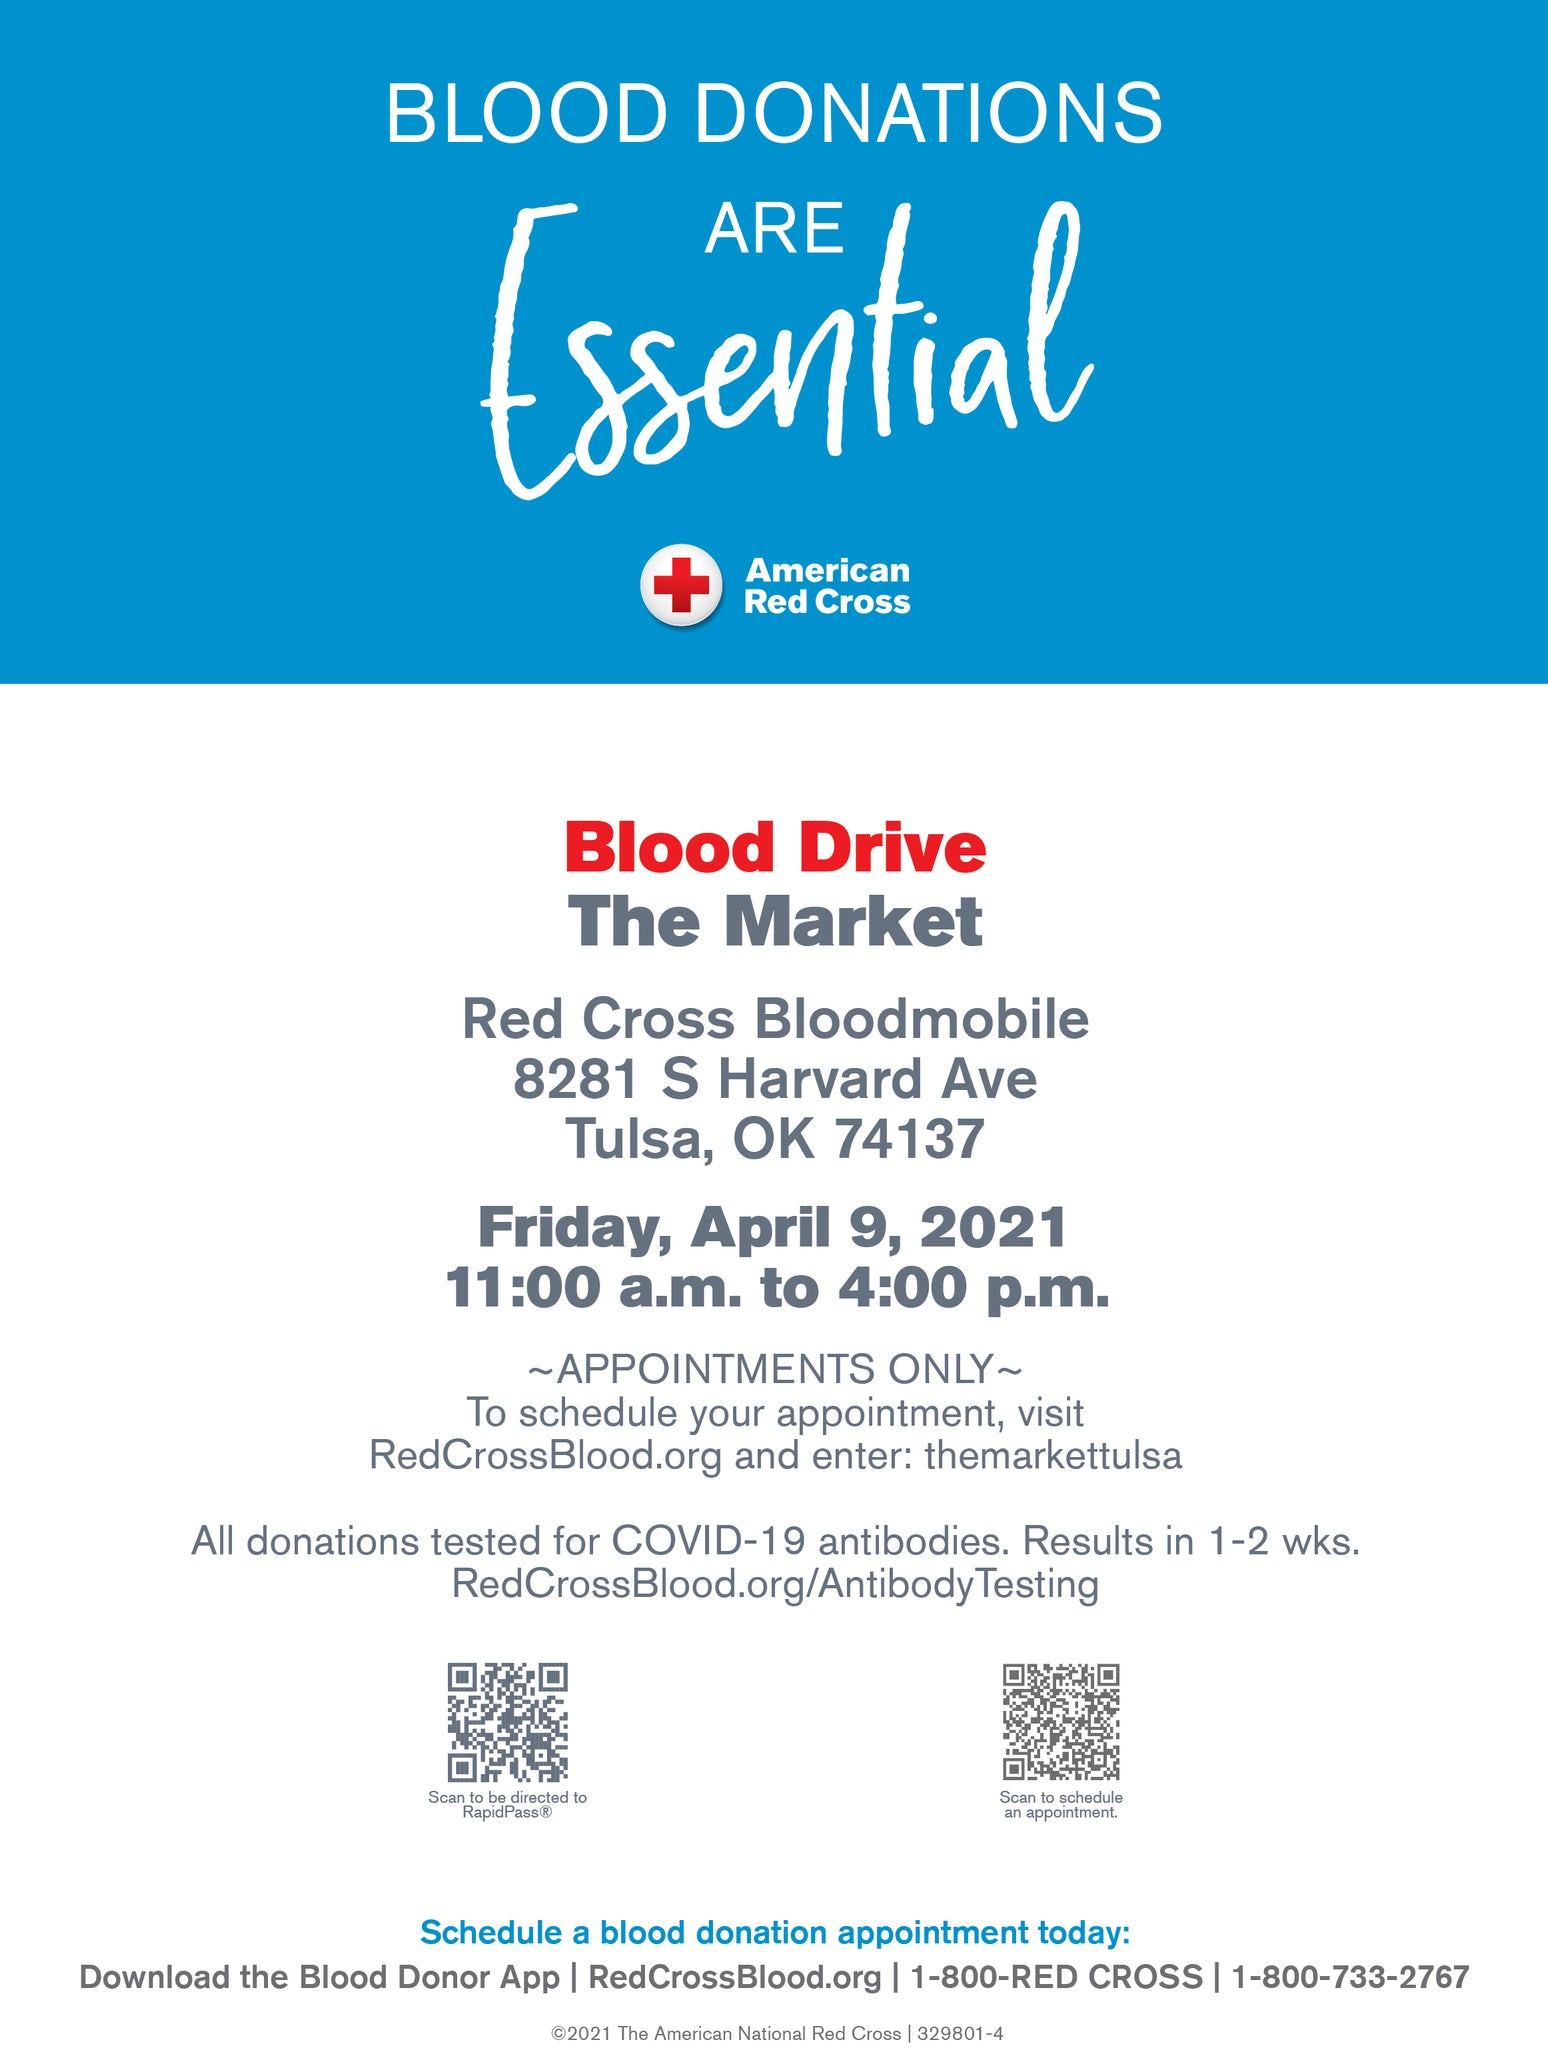 blood drive at The Market